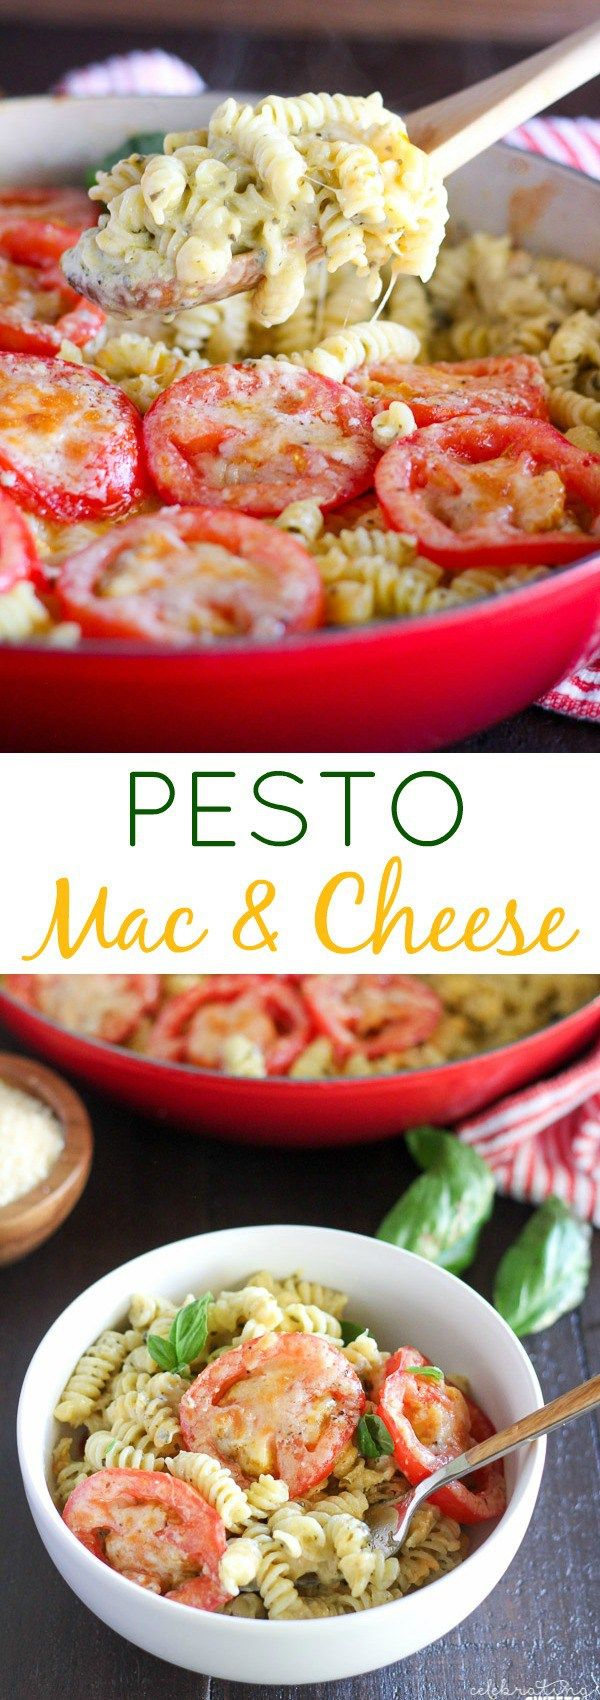 Pesto Macaroni and Cheese - An easy and flavorful one-pot meal of macaroni and…